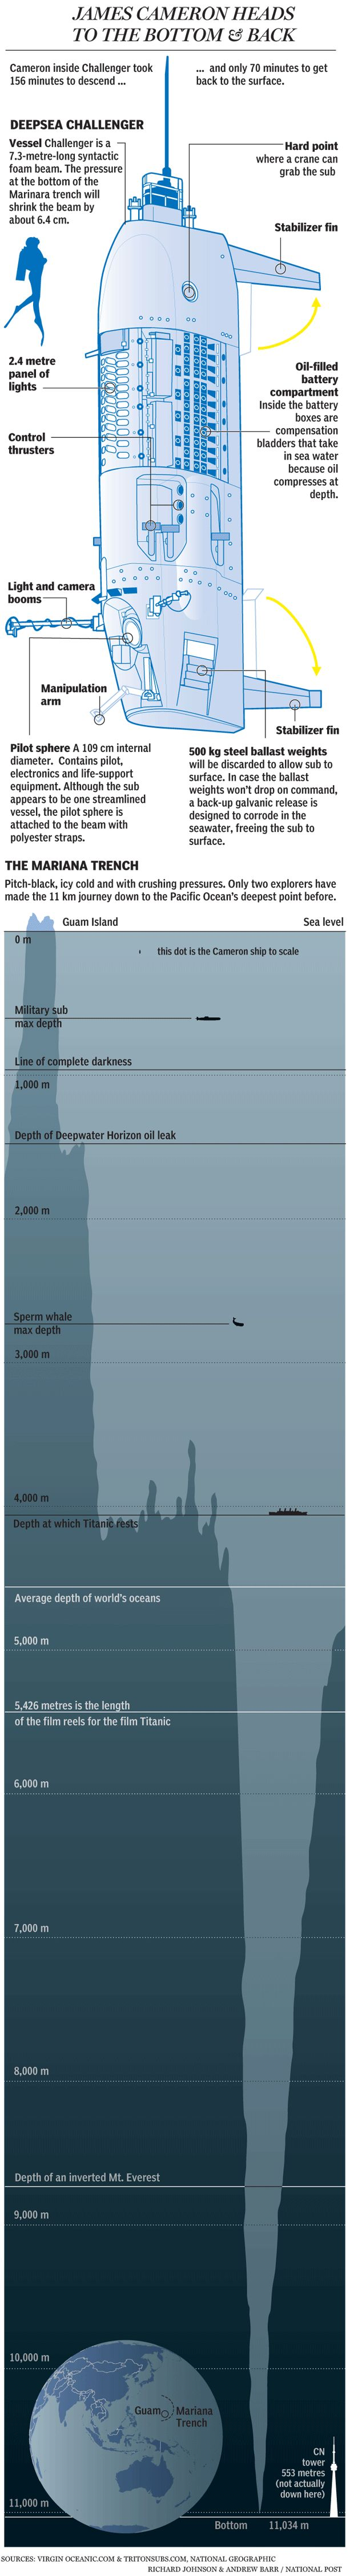 Great infographic showing the depth of the Mariana Trench, where James Cameron just went down.